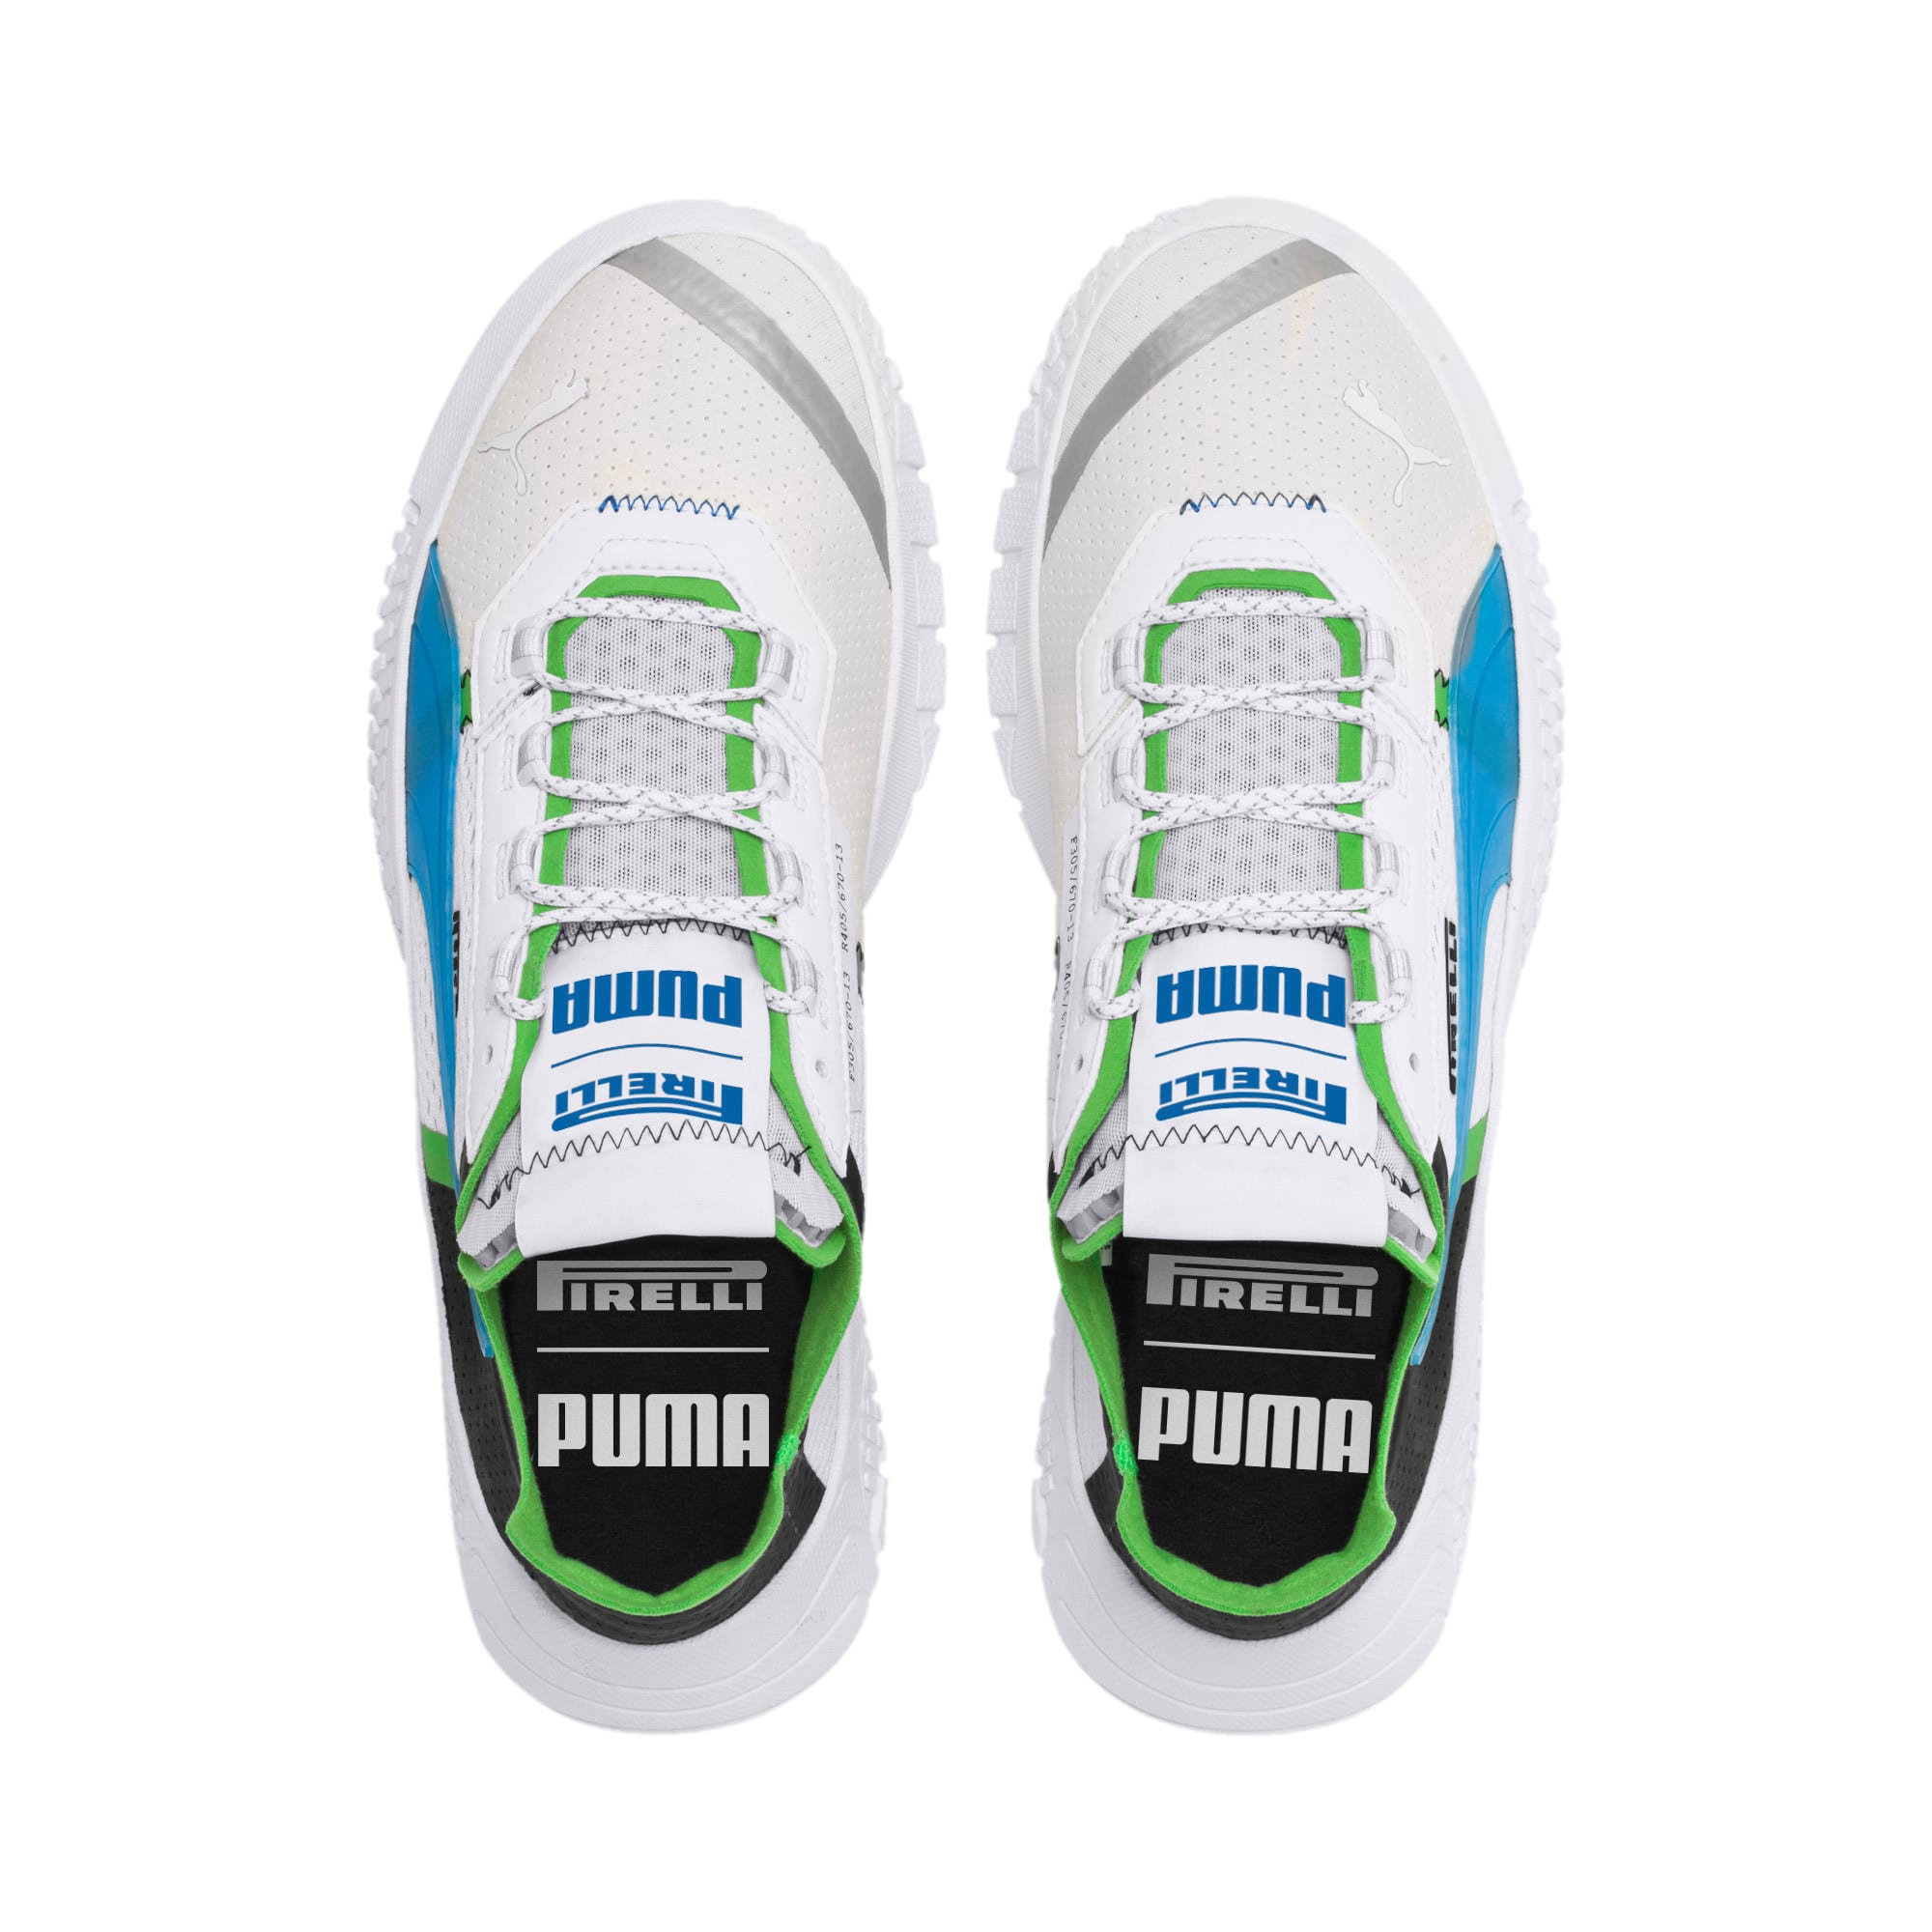 Thumbnail 7 of Pirelli Replicat-X Trainers, White-Black-Classic Green, medium